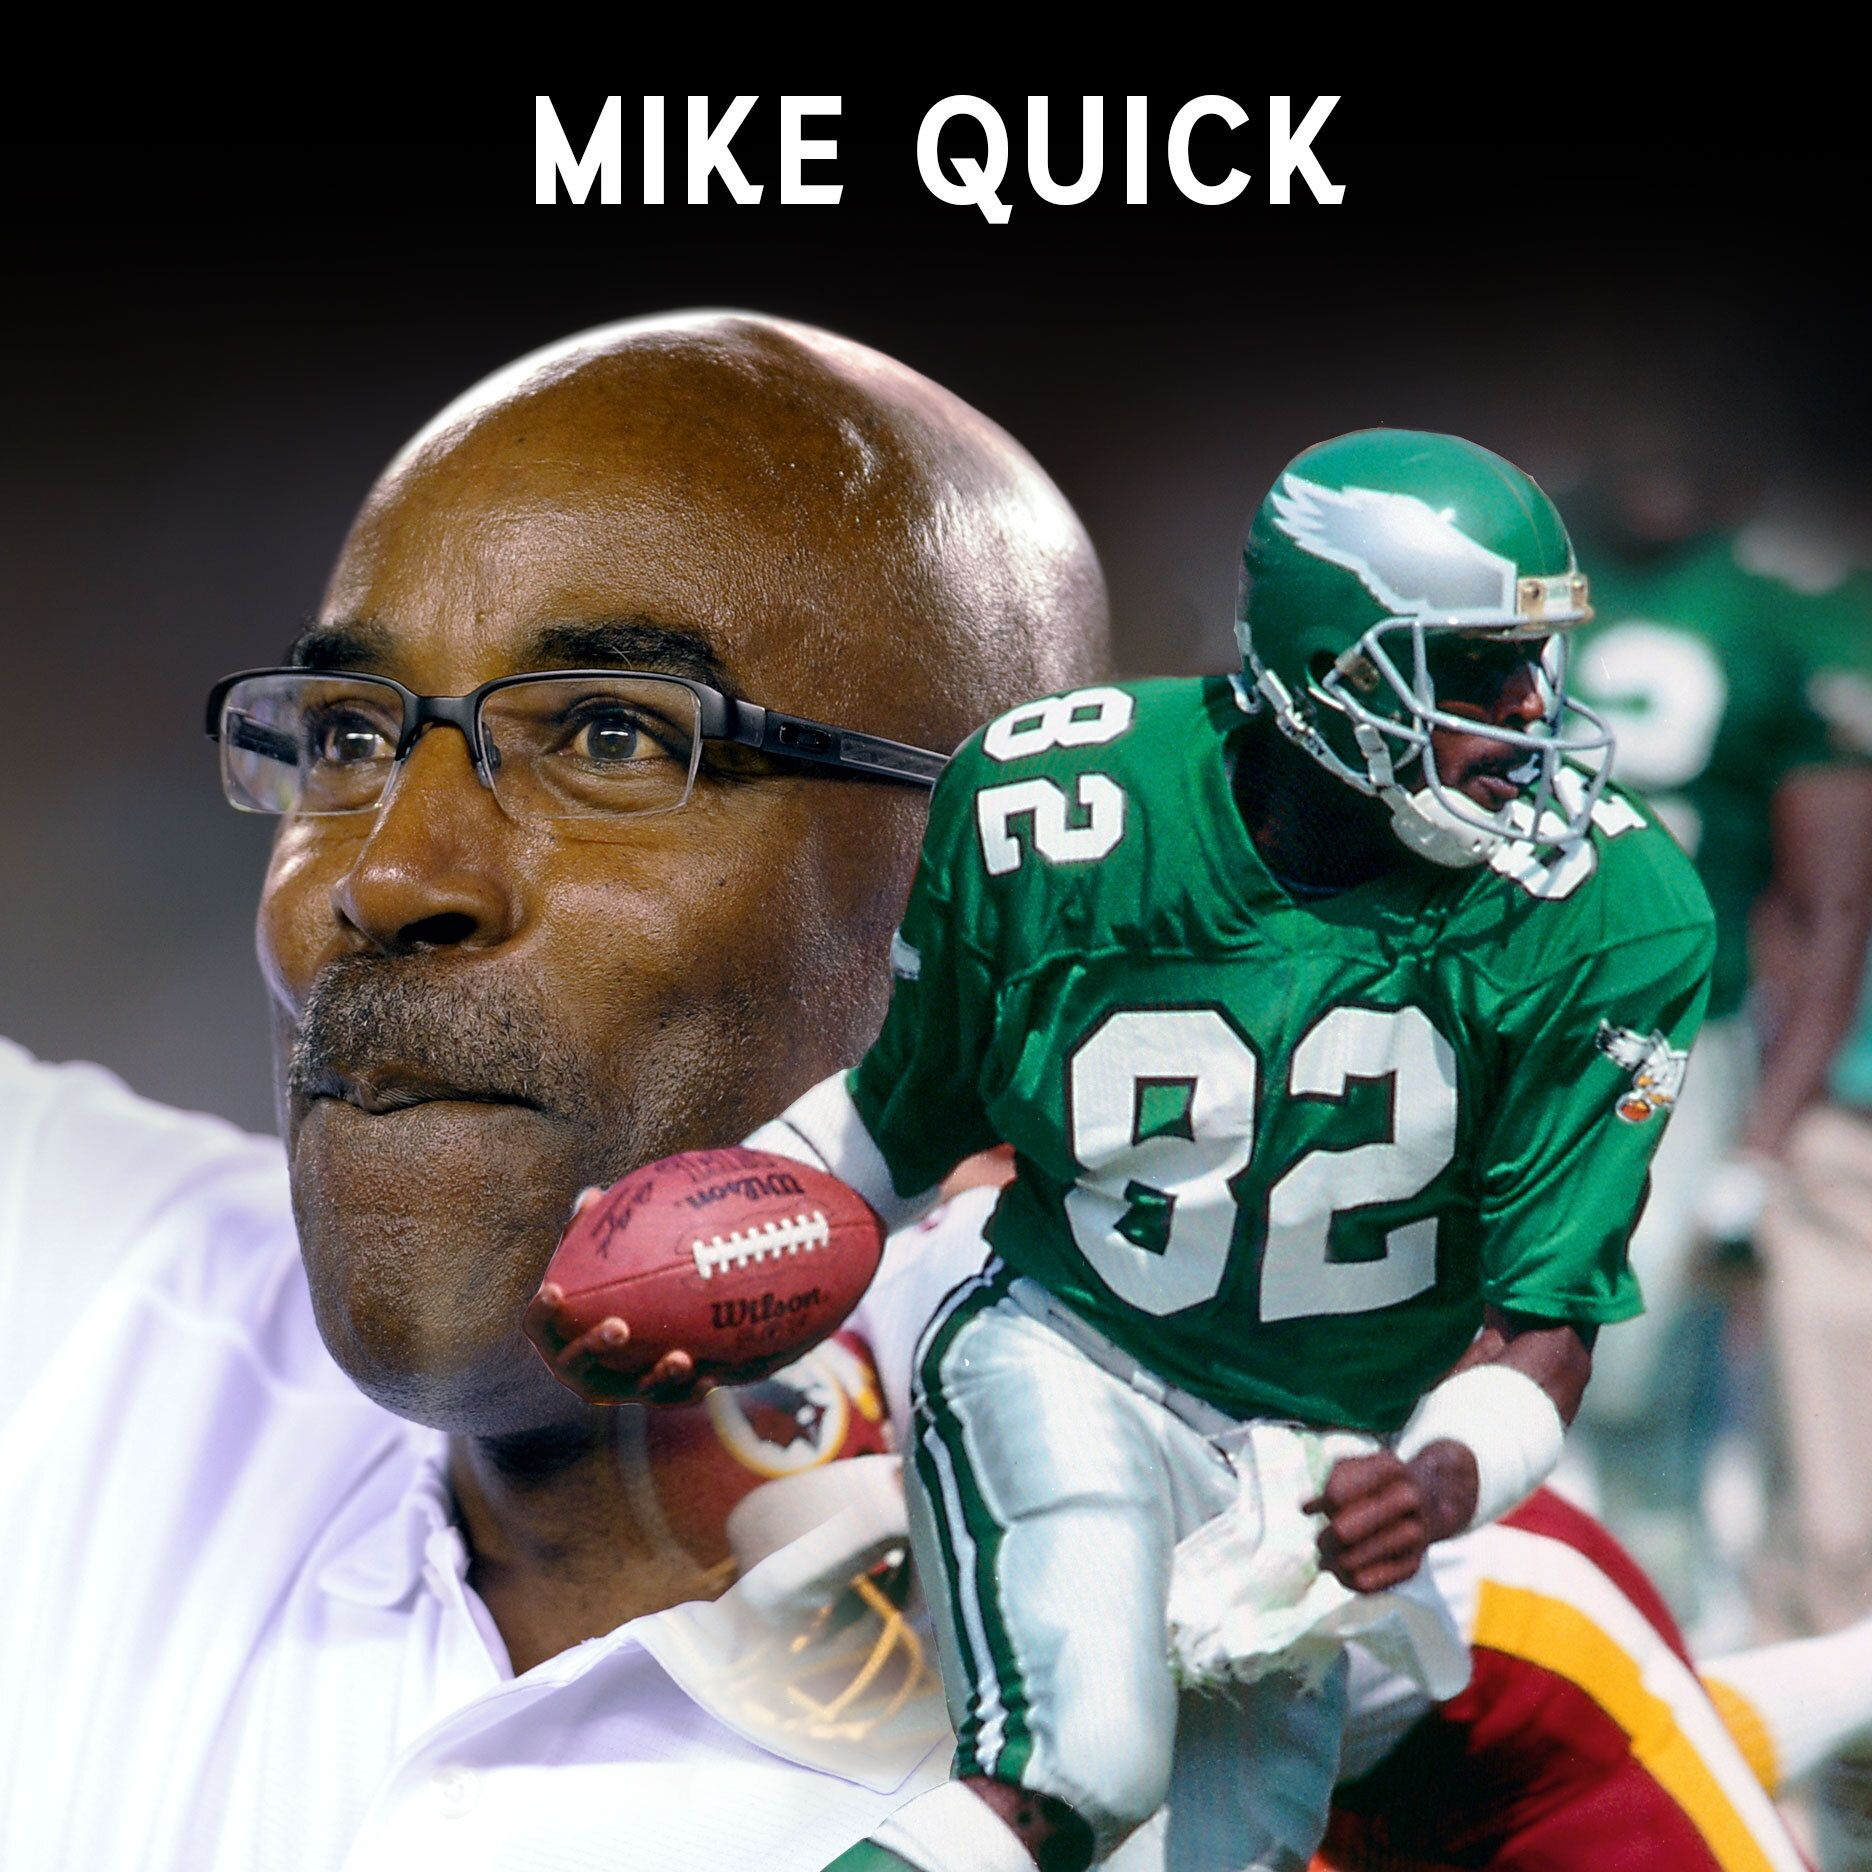 """I was chosen for this path."" Looking back on Mike Quick's humble beginnings"